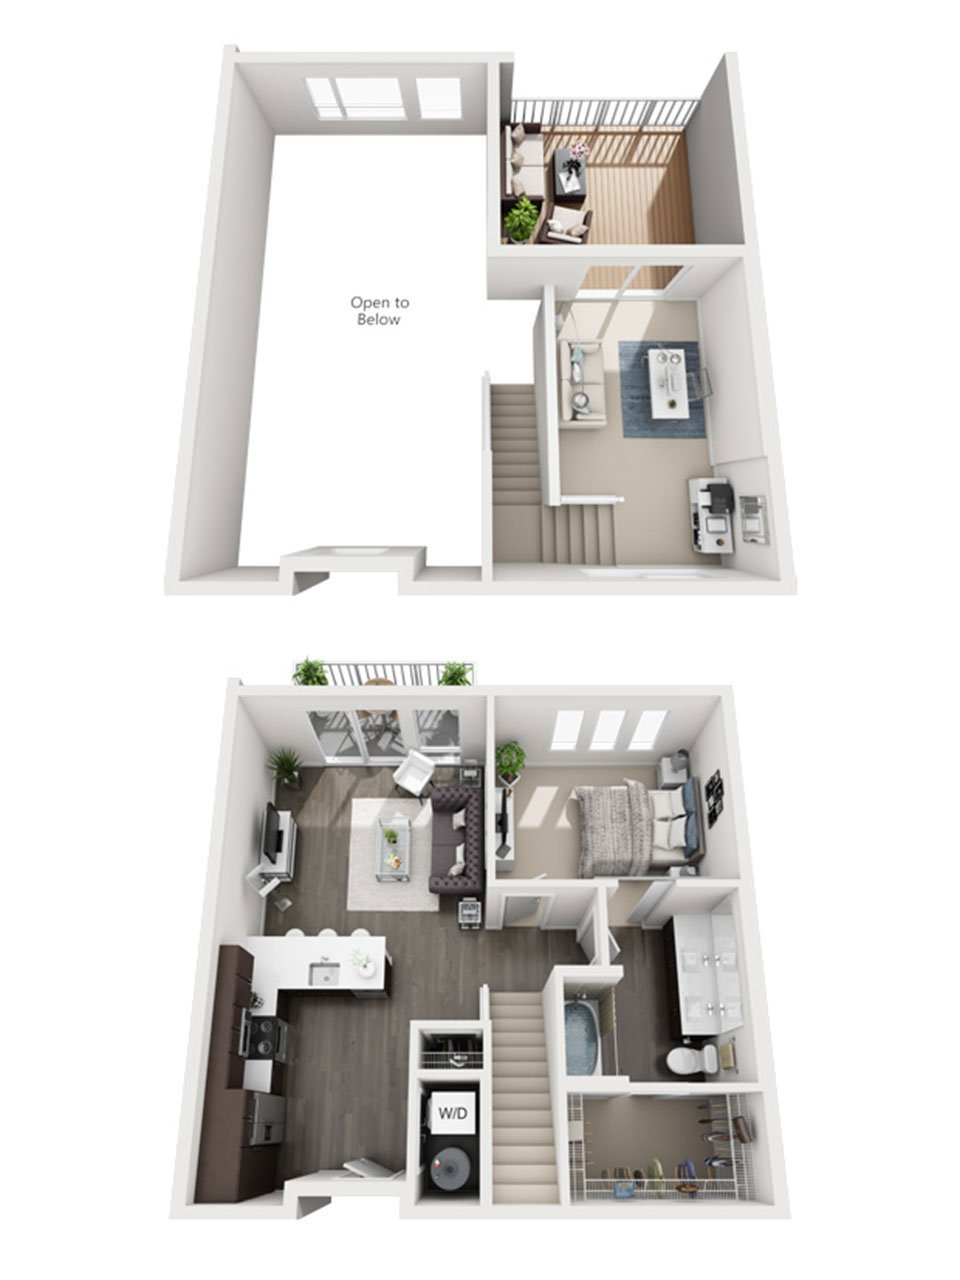 Plan 1 Bedroom – A2L | 1 Bath